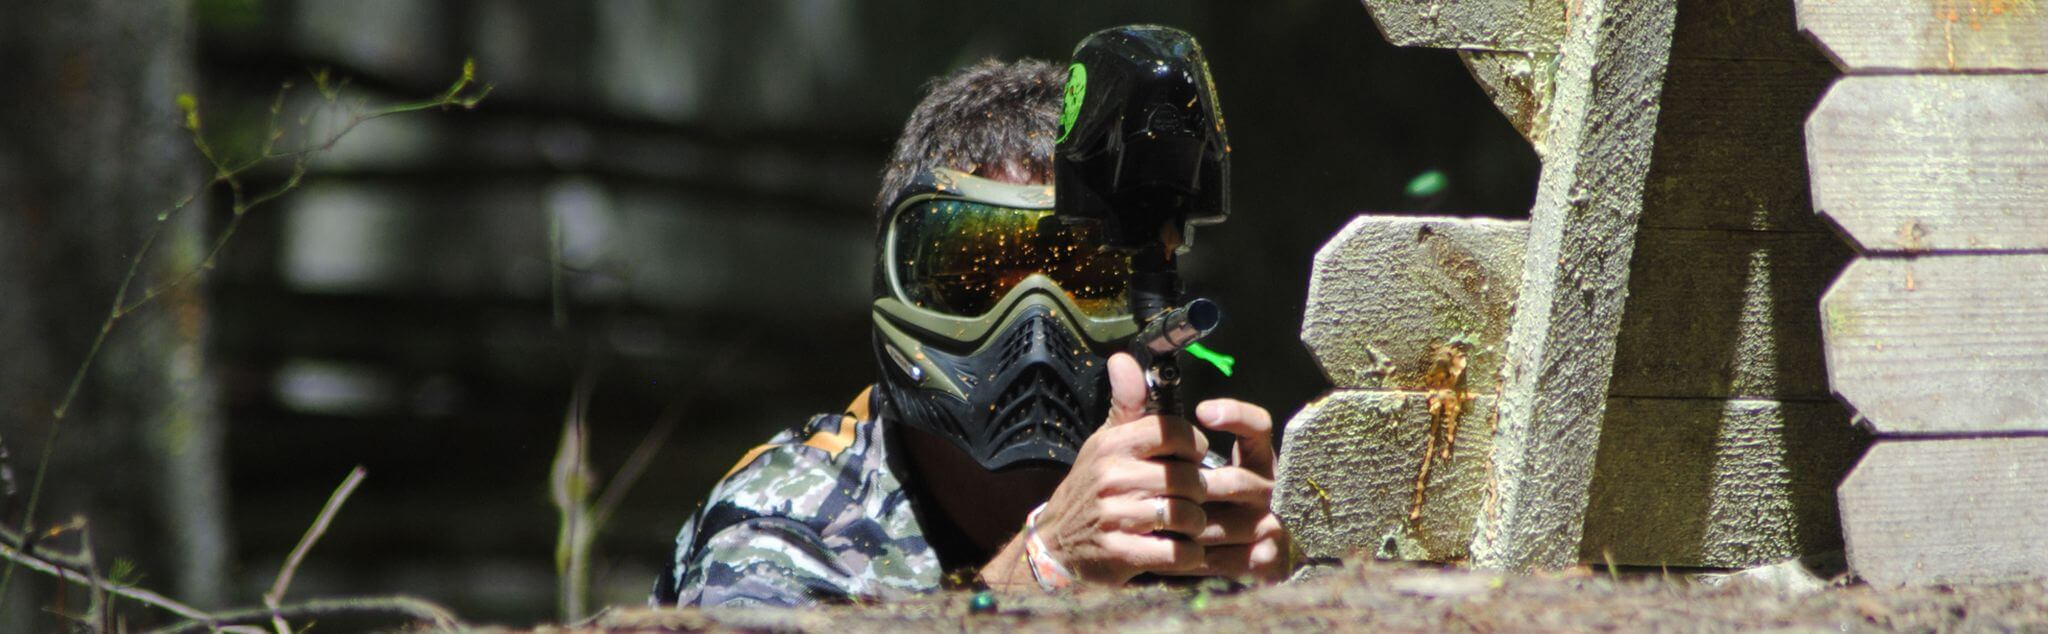 Paintball en Grazalema